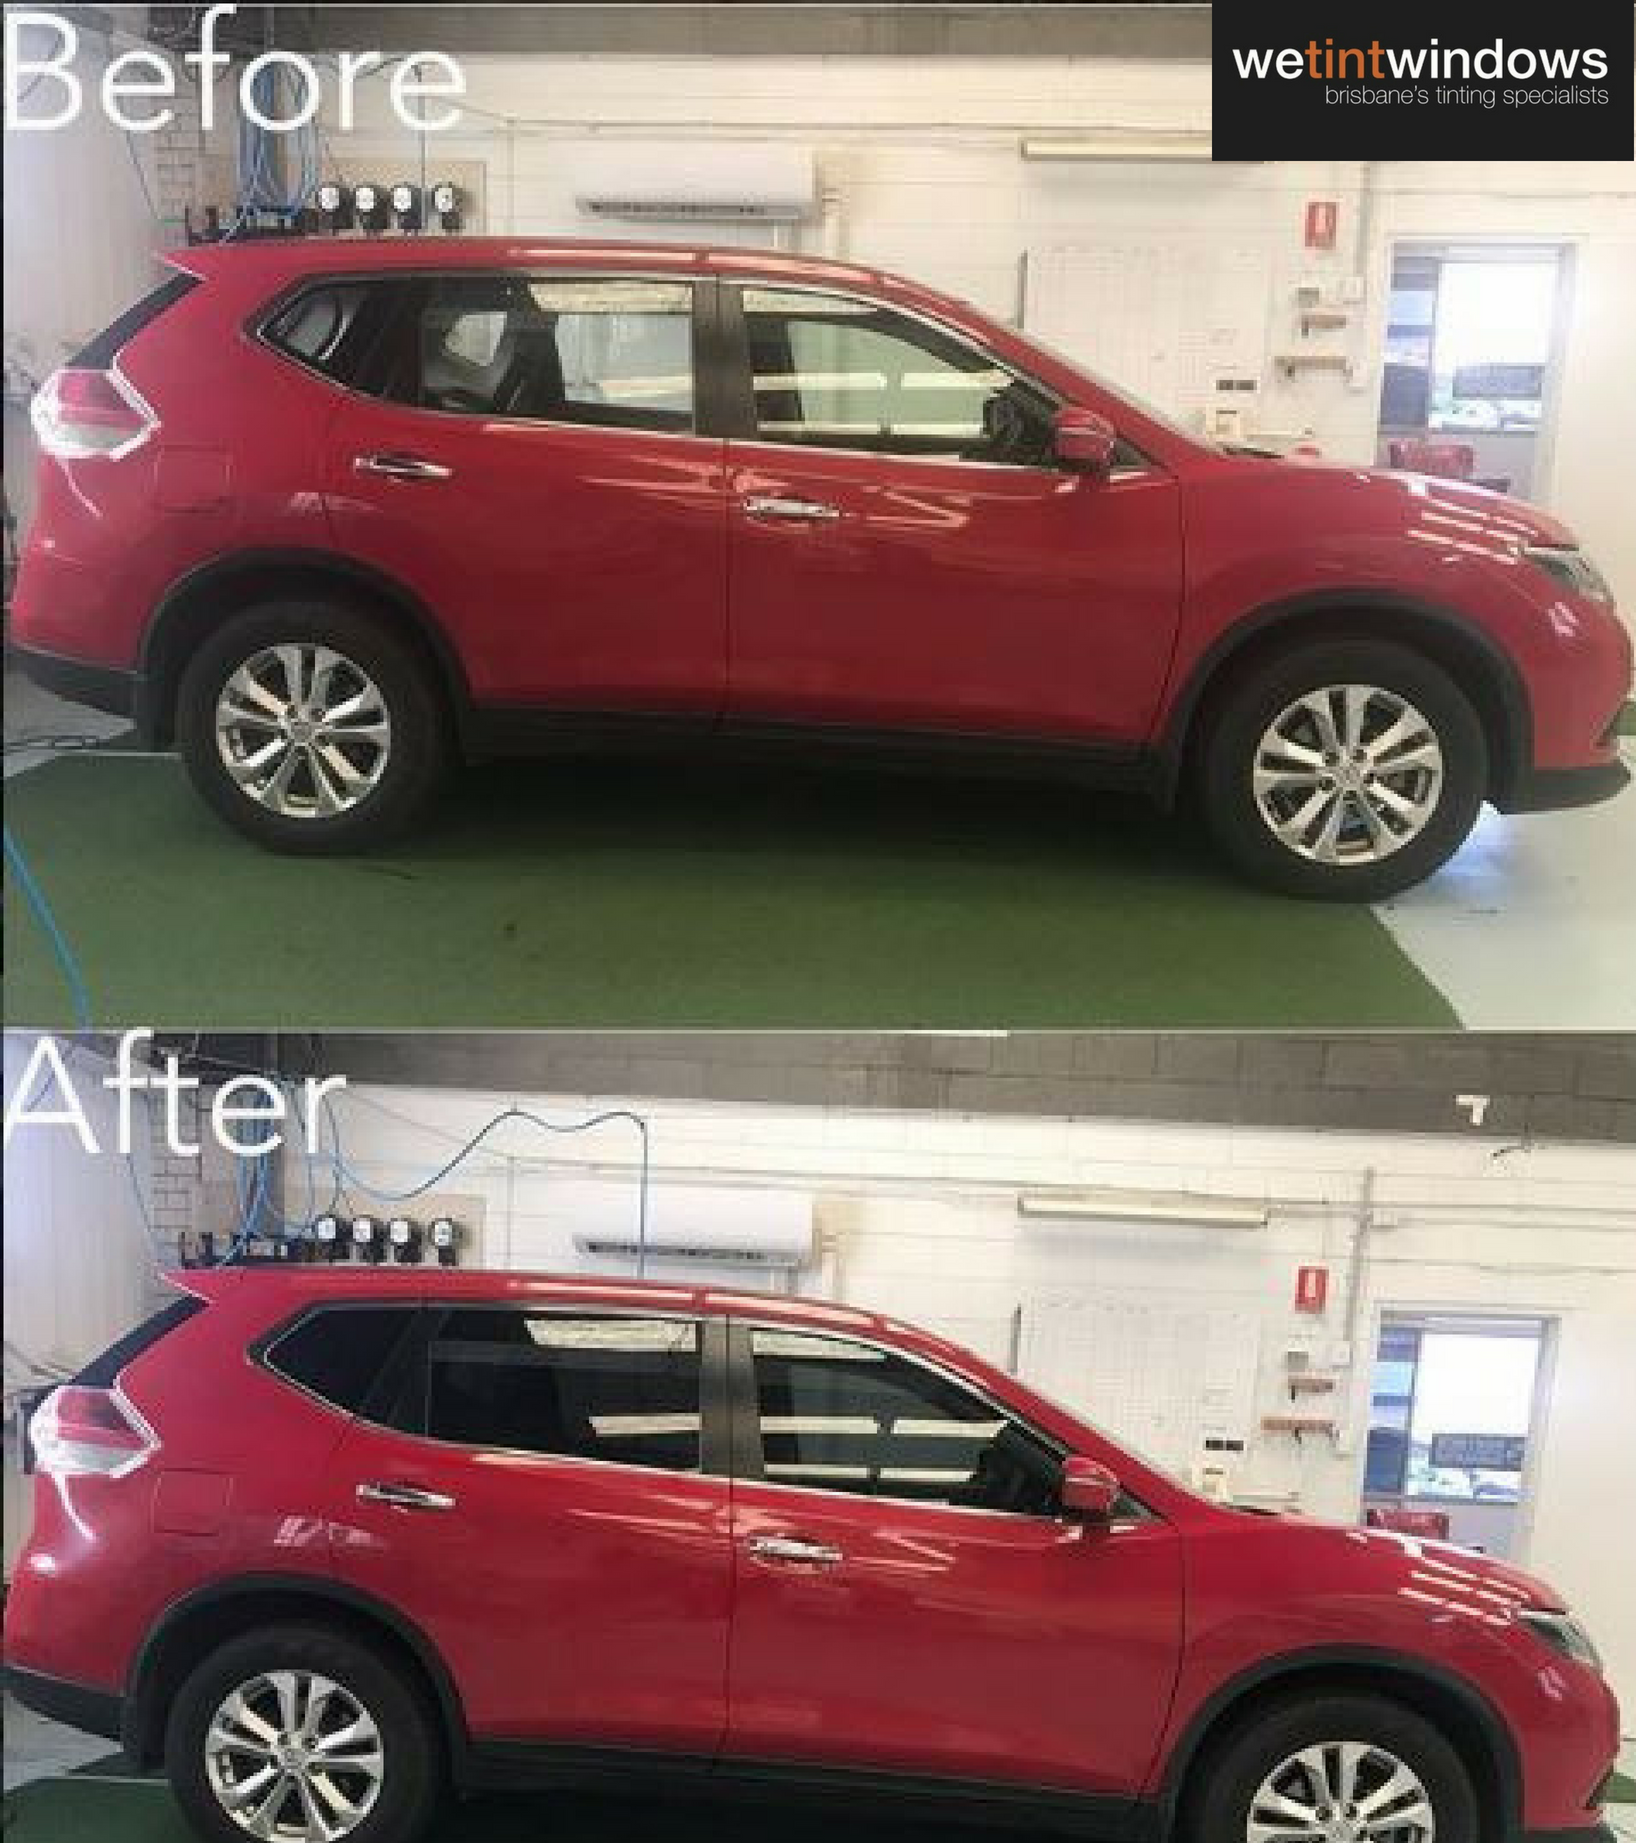 Car Window Tinting Black Tint Before And After Photos Tinted Windows Car Tinted Windows Car